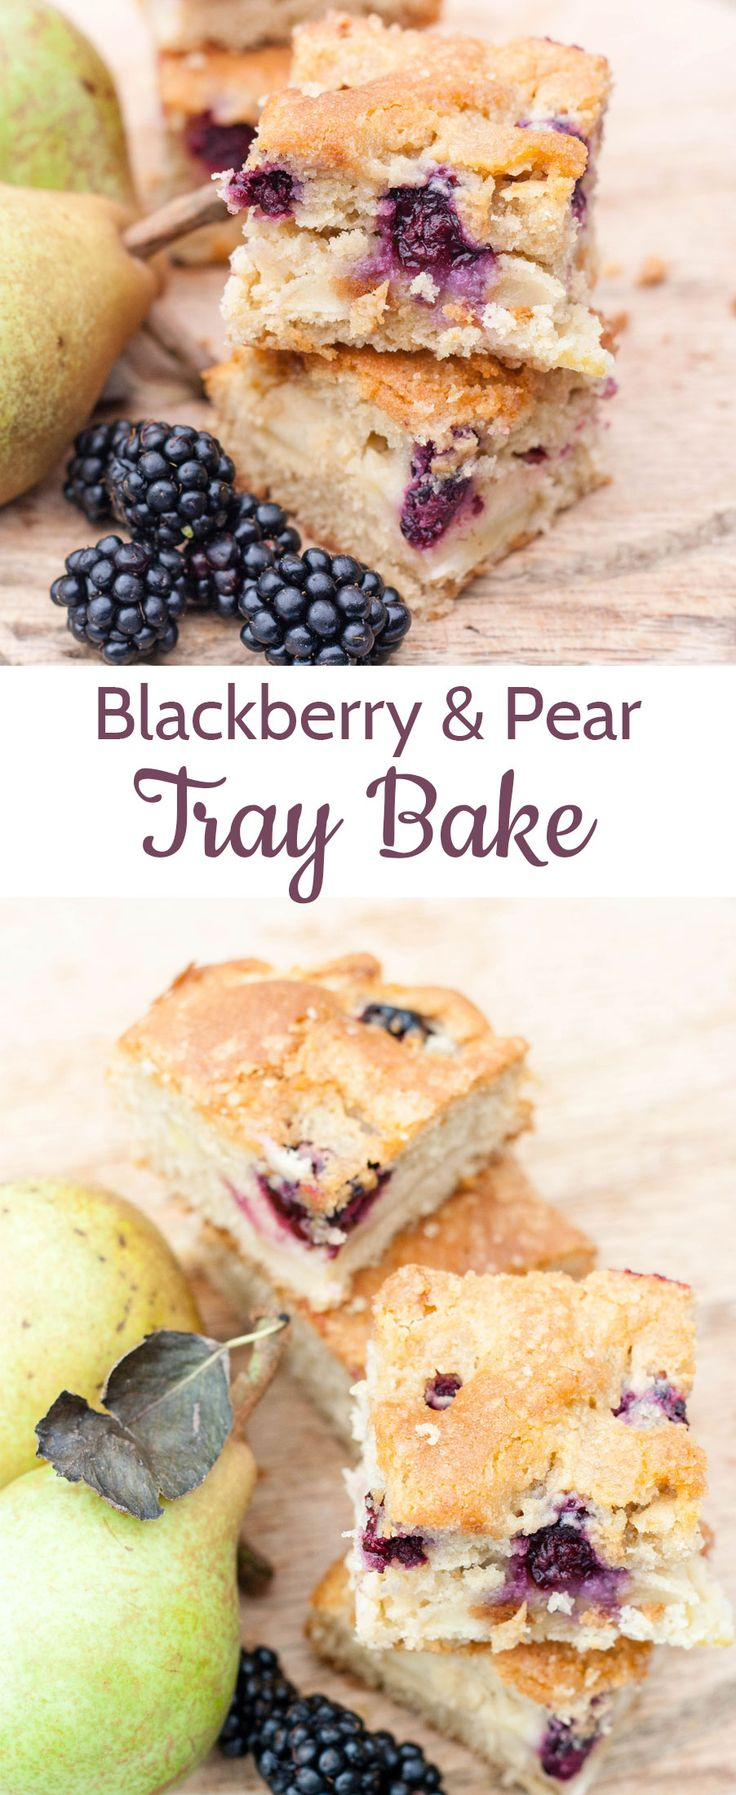 Enjoy this blackberry and pear traybake and use up unripe windfall fruit; it's perfect for picnics.